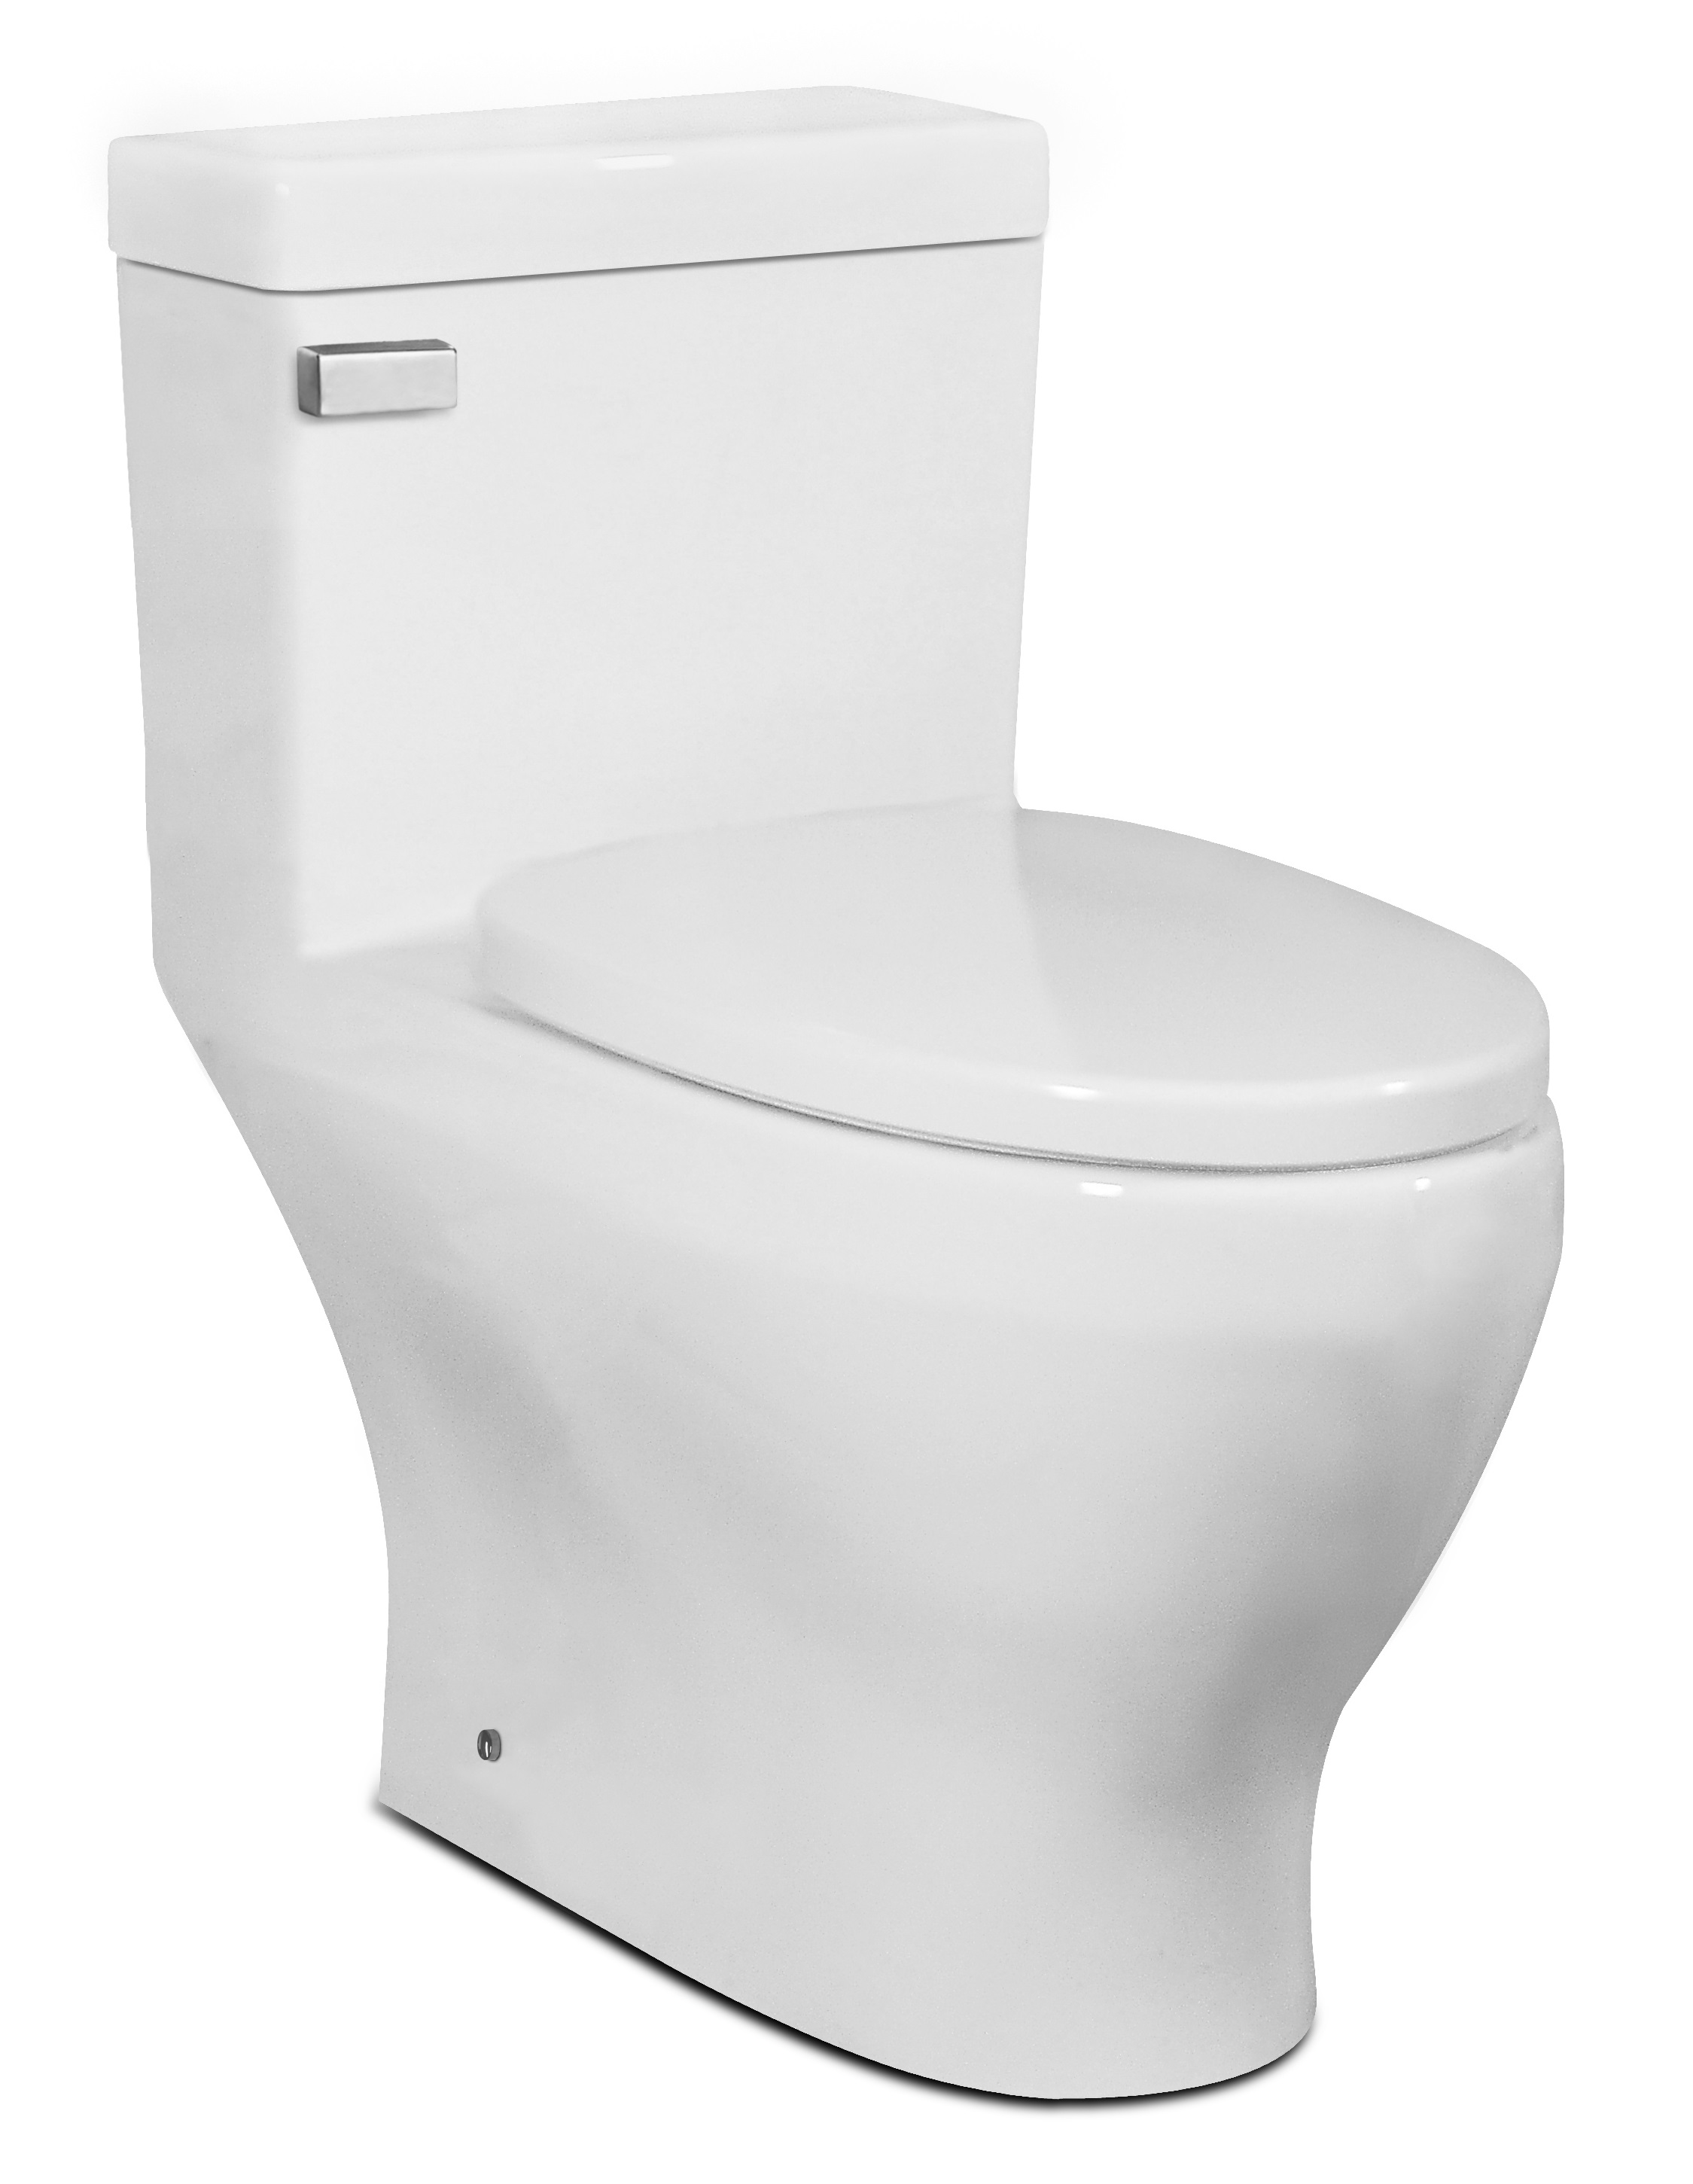 Cadence Toilet By Icera